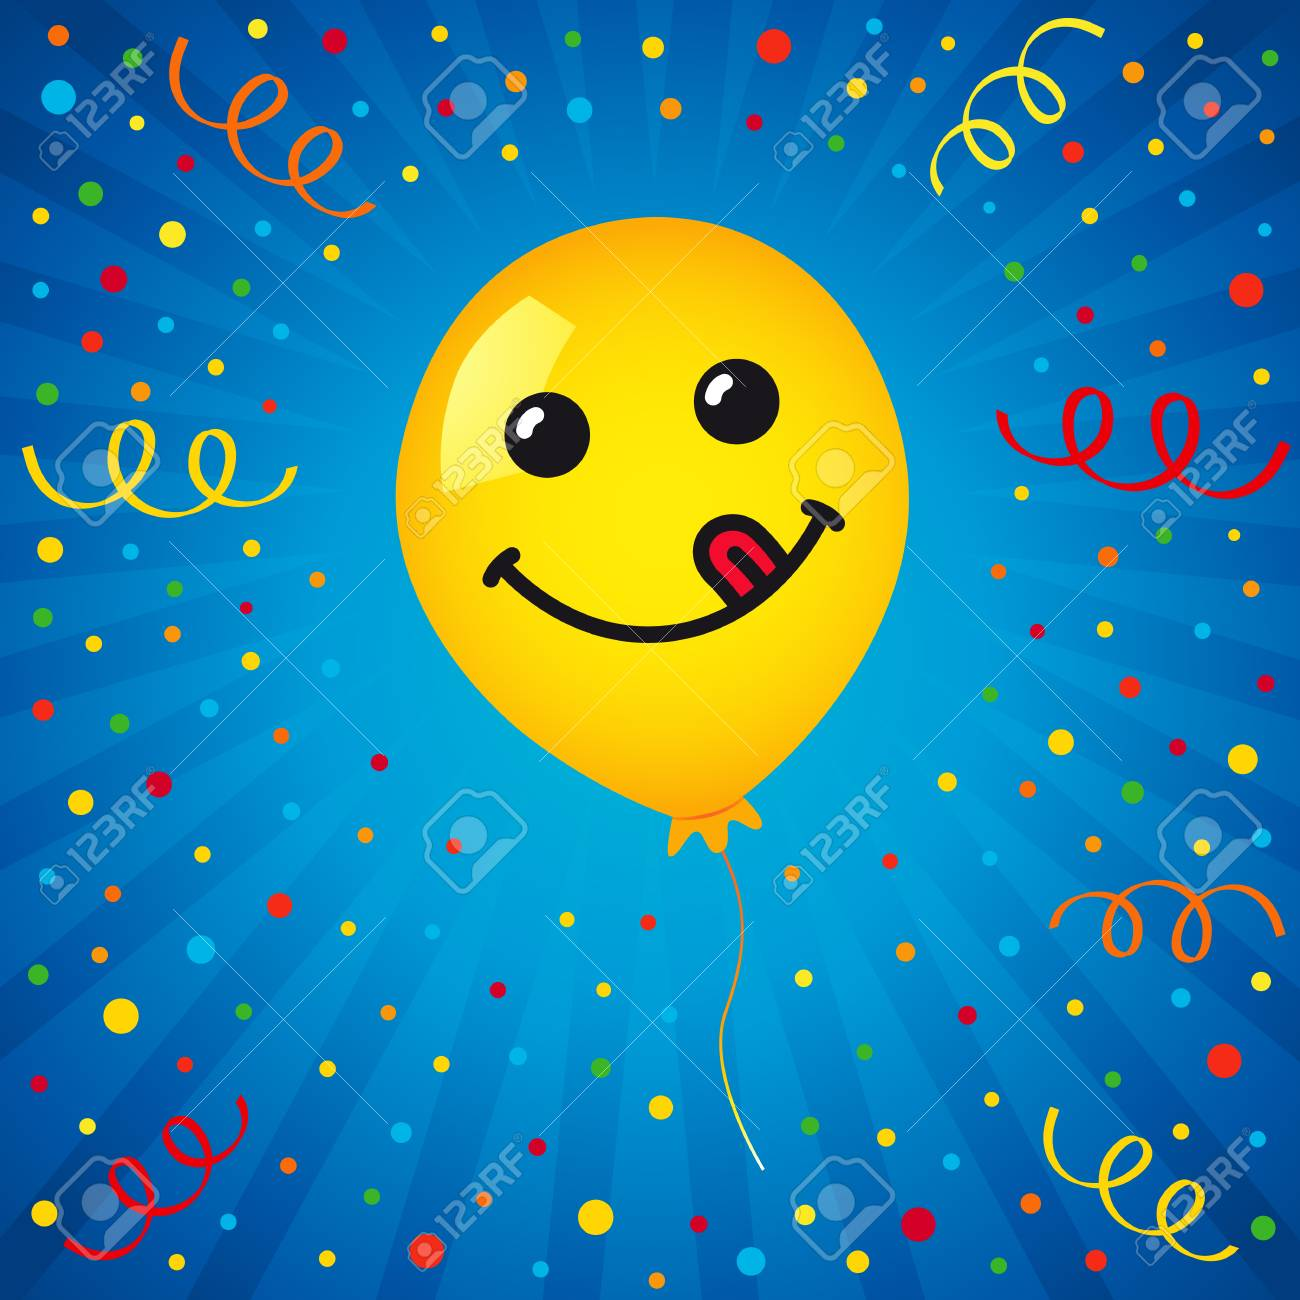 Smiling Of Yellow Balloon And Colored Confetti On Blue Background Vector Emoticon Emoji Flat Smile